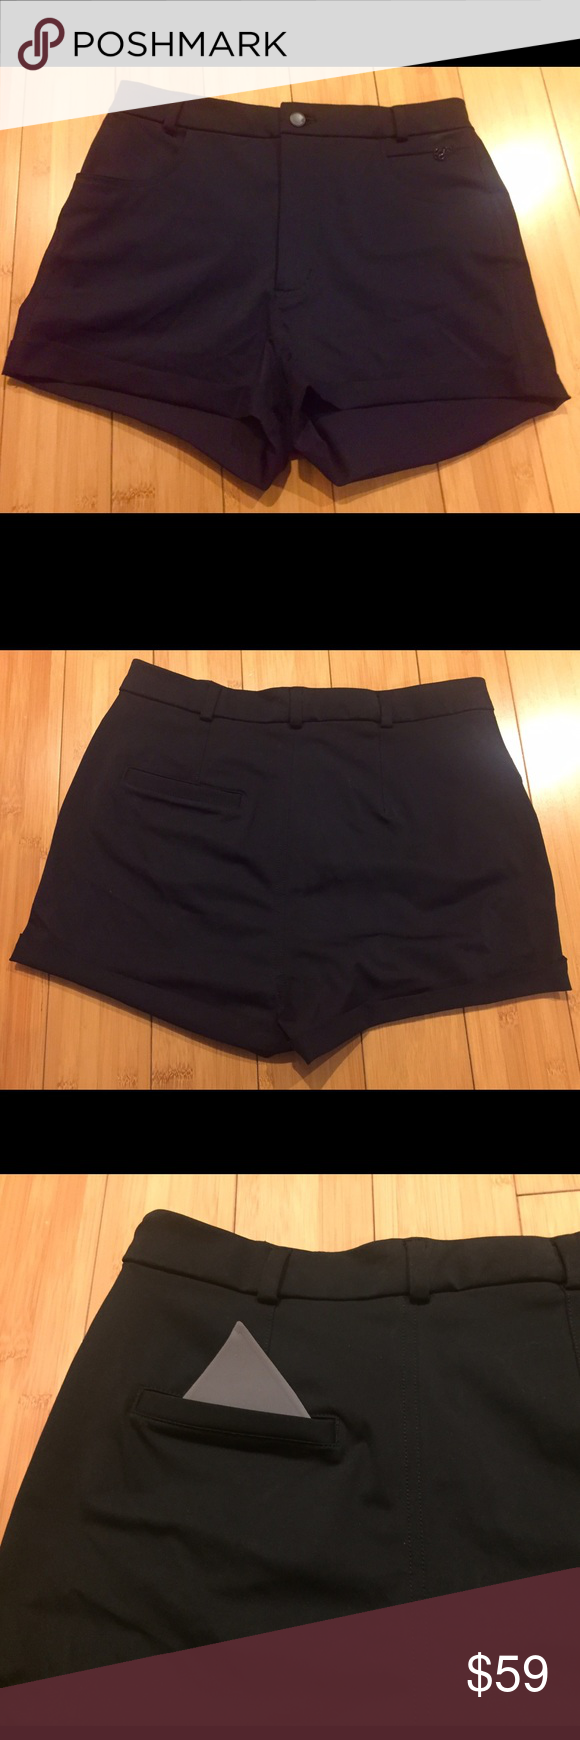 """Lululemon Get It On dress shorts sz10 New w/o tags Lululemon shorts are from the """"Get It On"""" collection. They're super comfortable and flattering. From the original tag: """"Wear these high-waisted shorts around town or pack them in your bag en route to a sunny destination. Sweat-wicking fabric has two-way stretch to move with you. Front zipper pocket to secure essentials."""" Hidden reflective pocket. High-rise, 1 7/8"""" inseam. New, never worn but no tags. Pet-free, smoke-free home. lululemon…"""